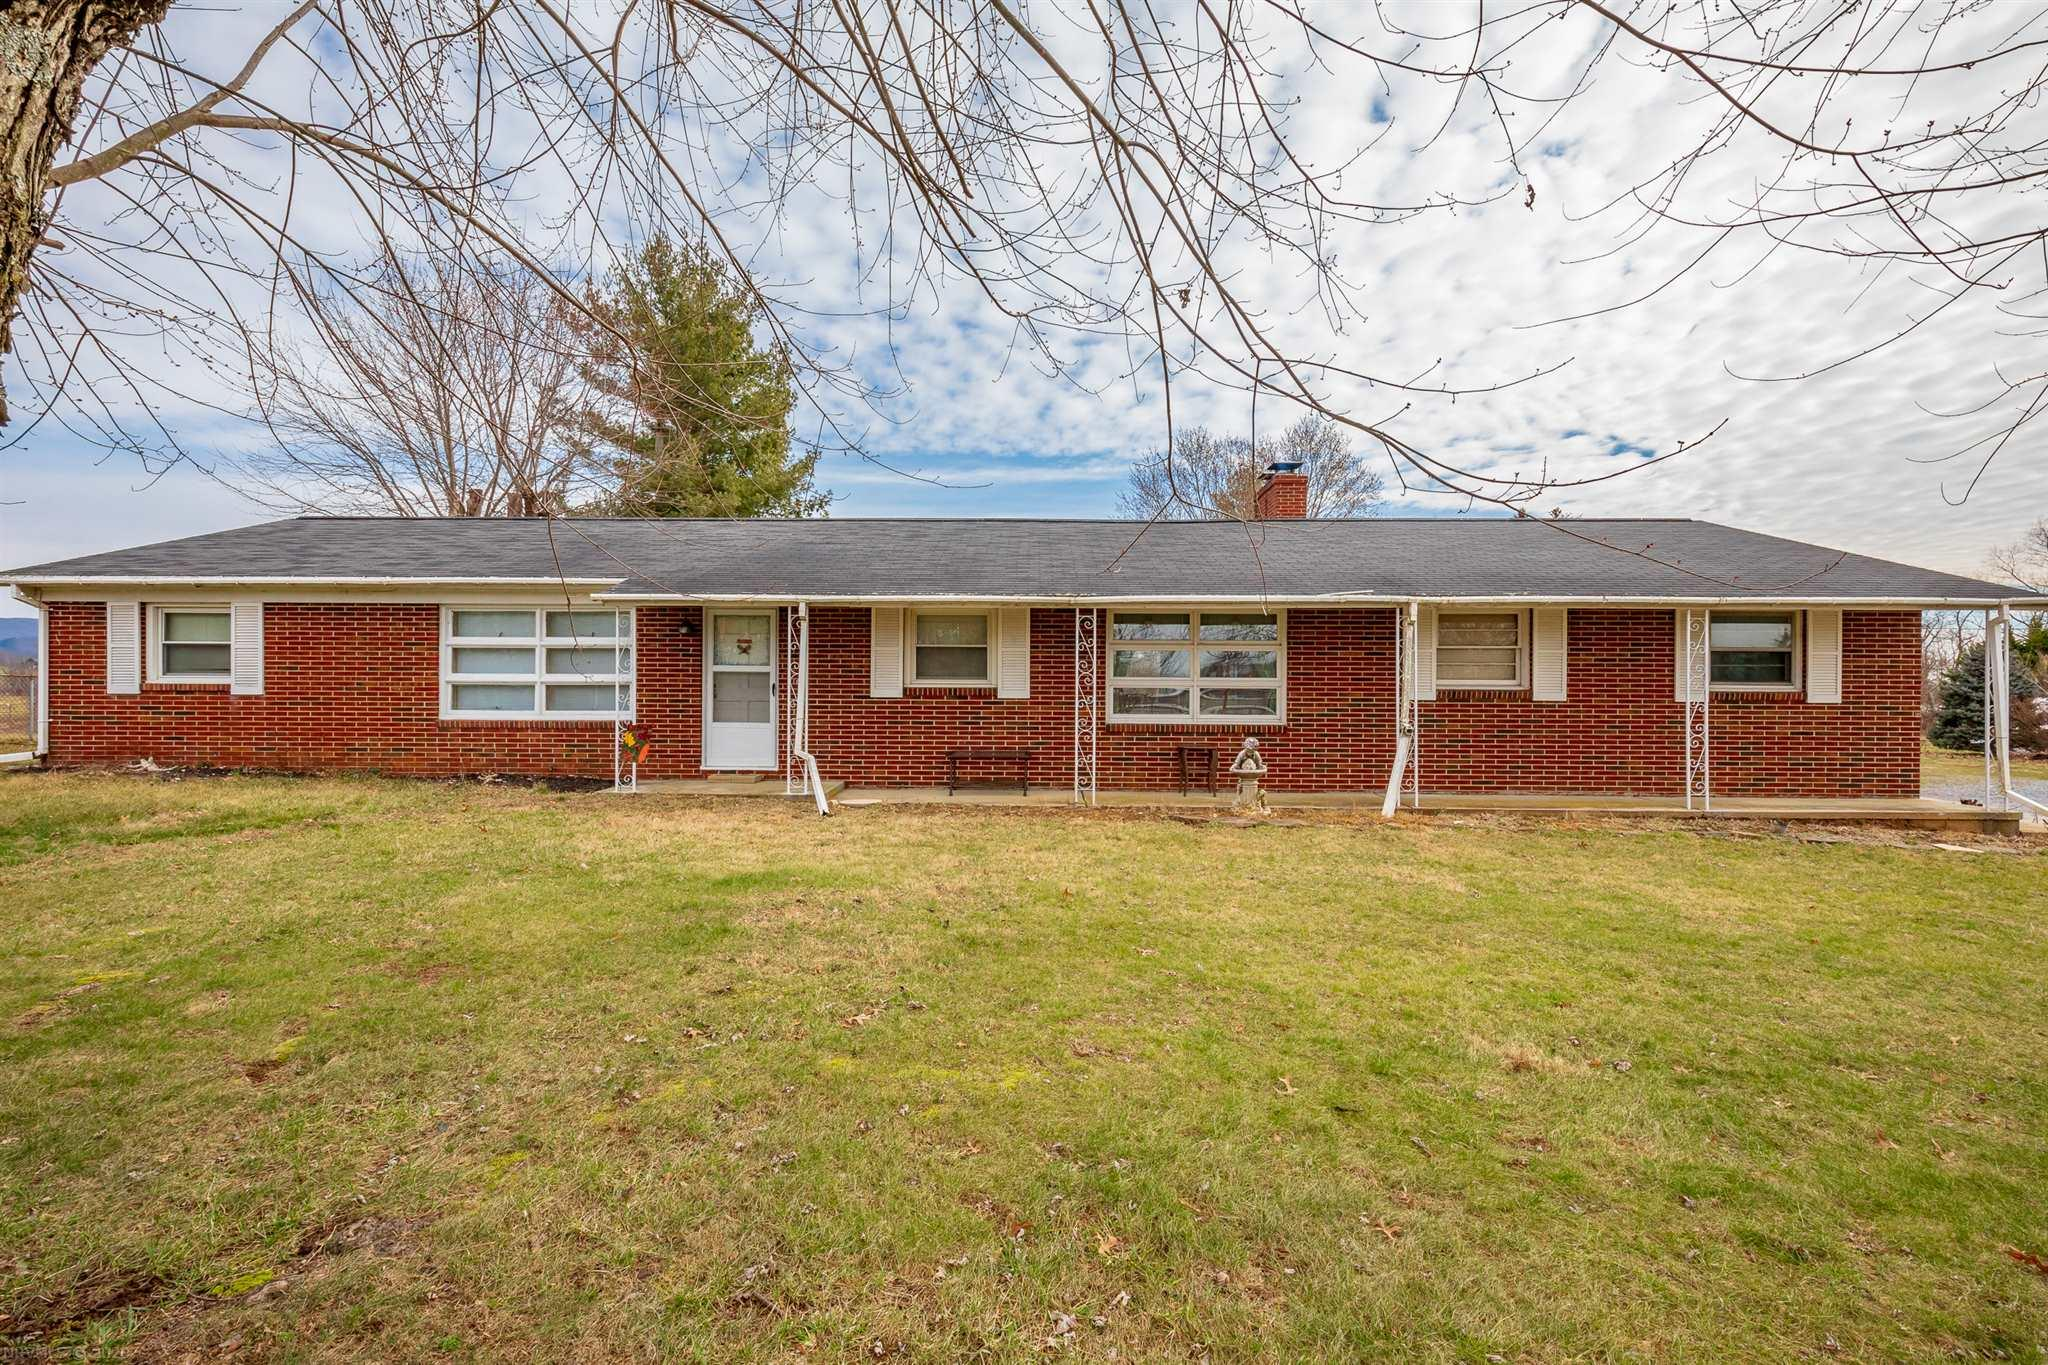 Country living in town limits! If one level living is what you desire then this home is a must see! Well maintained brick ranch offering 3 bedrooms, 2 baths, and an unfinished basement that gives you the option of more living space in the future. The family room hosts a built in grill and wood stove with plenty of room to host friends and family. This property offers a level 1.9 acres of possibilities such as garden space or room for additional structures. Mature apple trees, grape vines, and visits from deer and other wildlife right outside your back door. Literally minutes to I-81, an hour drive to Bristol and Roanoke and a short distance too many local attractions. You must see to appreciate so schedule a showing today!